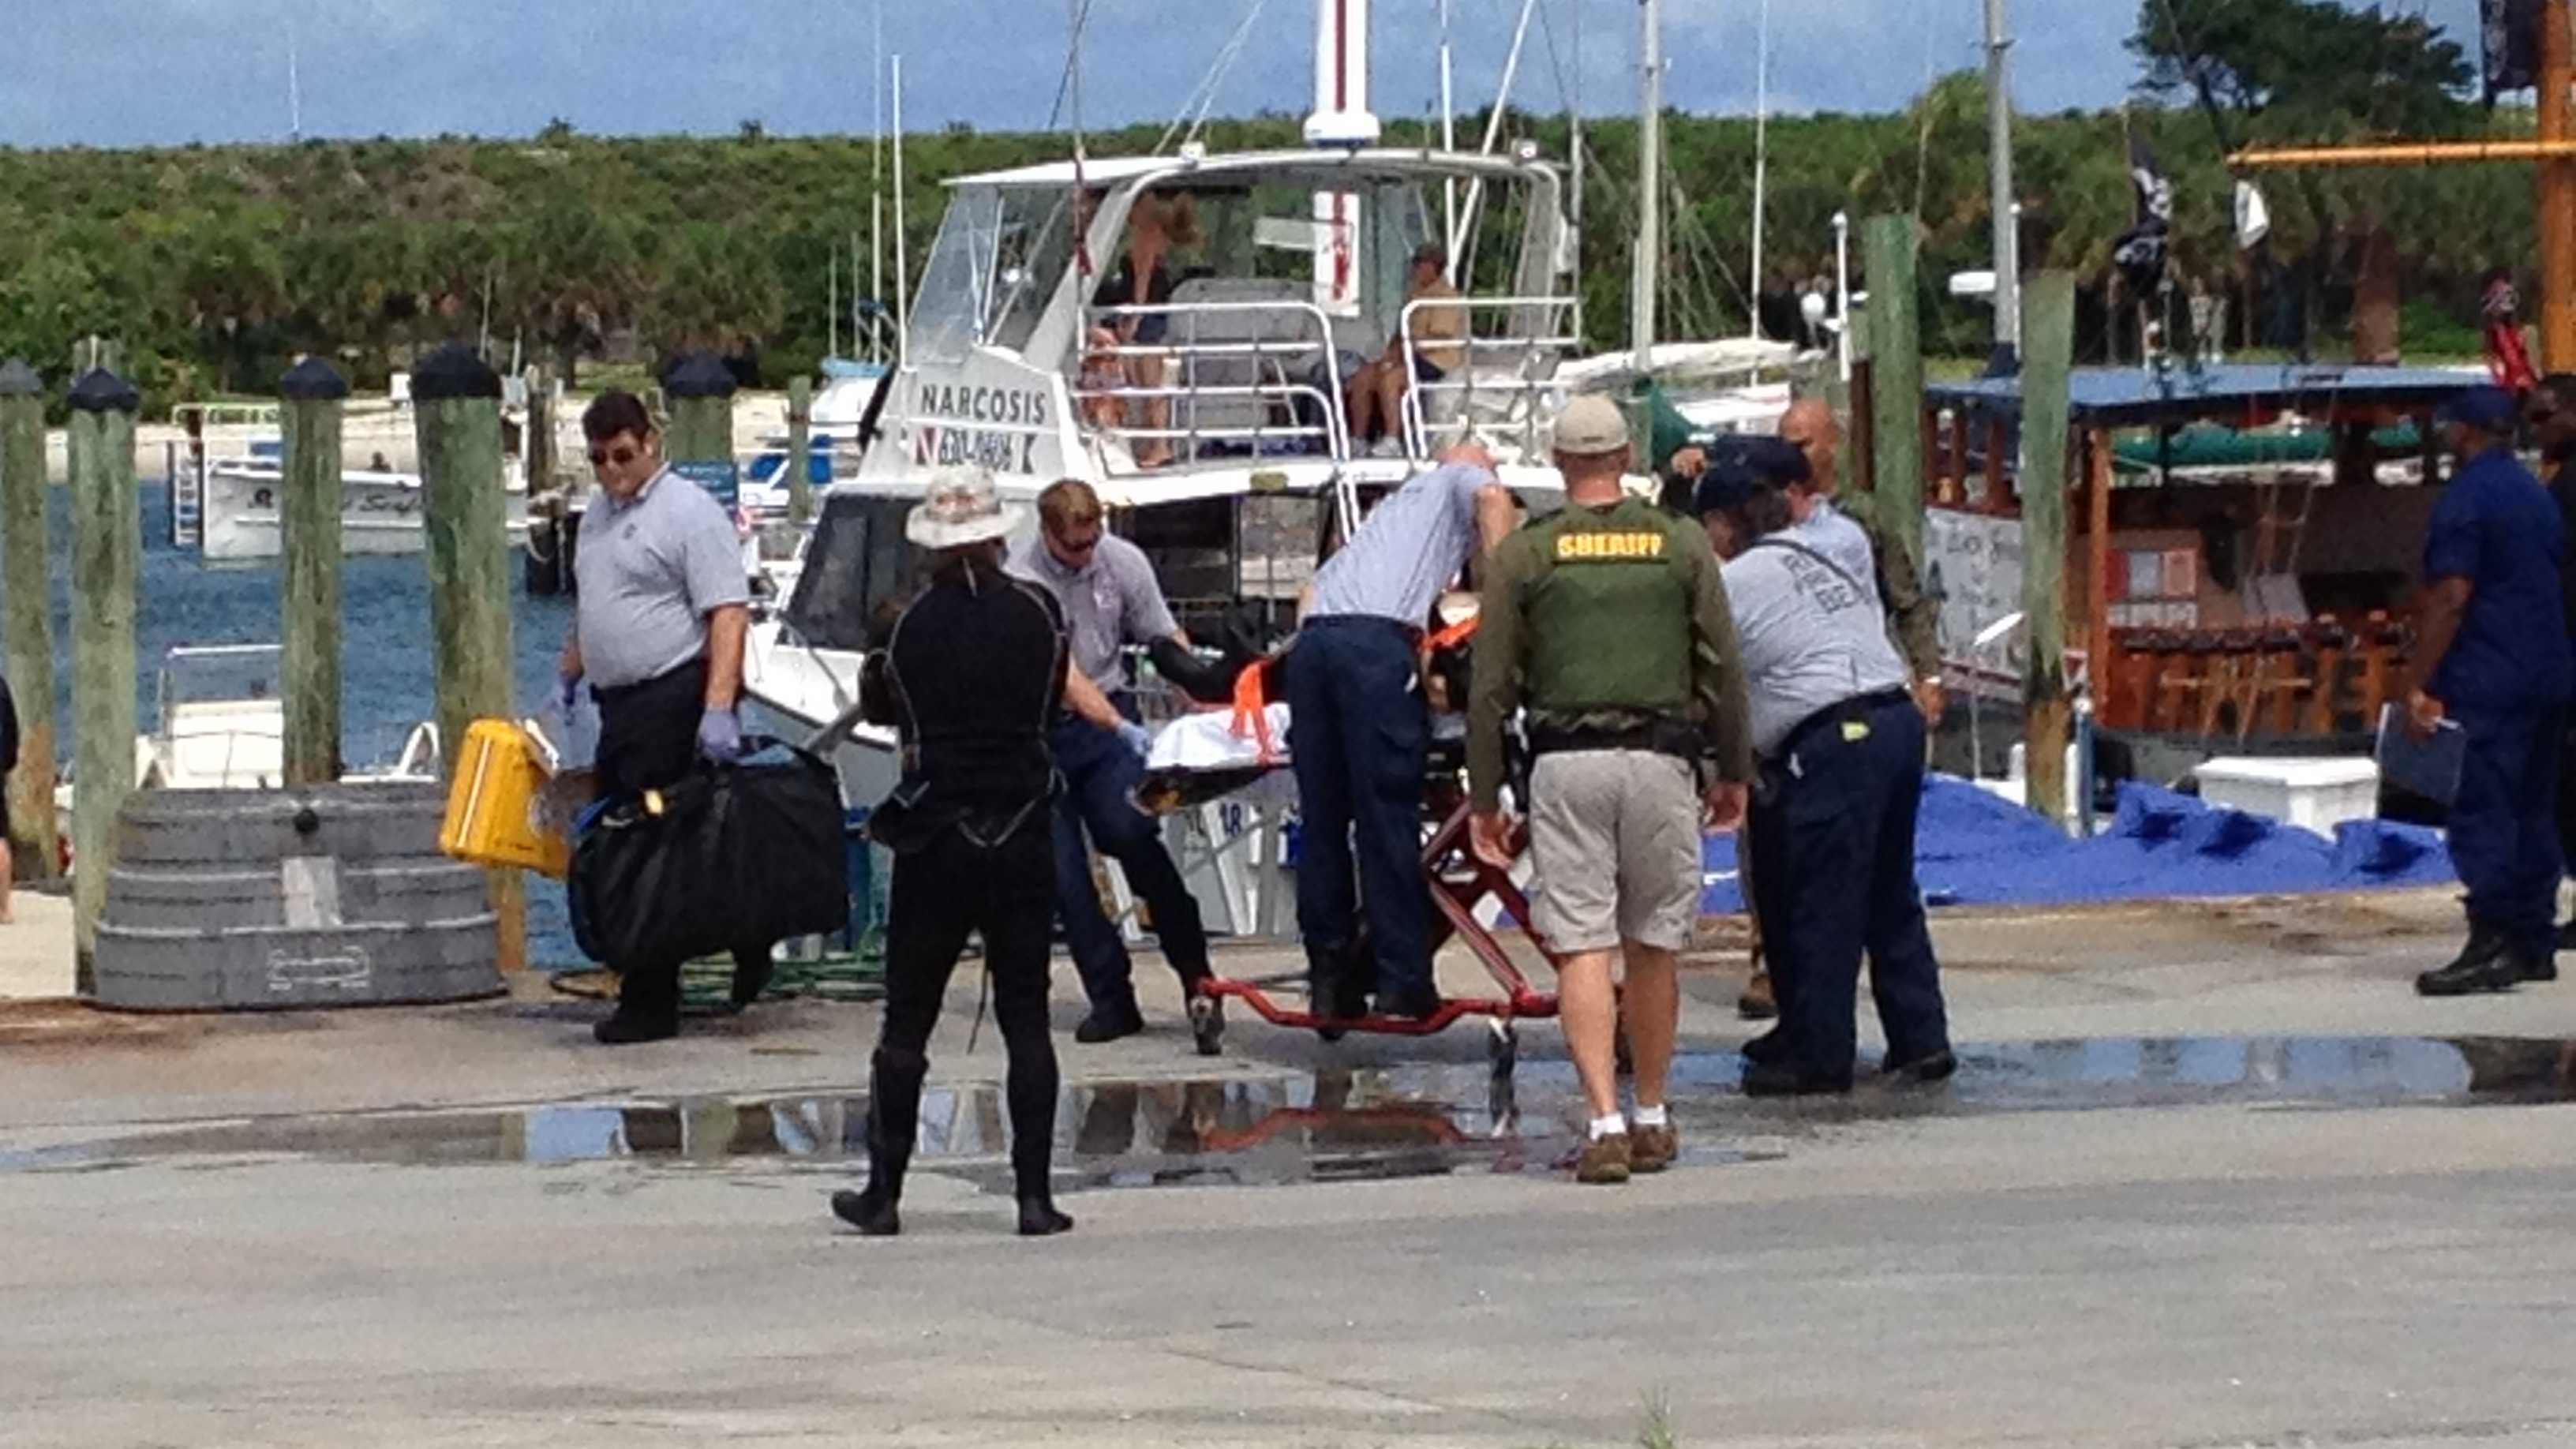 A scuba diver is placed on a stretcher after being brought to the Riviera Beach marina.